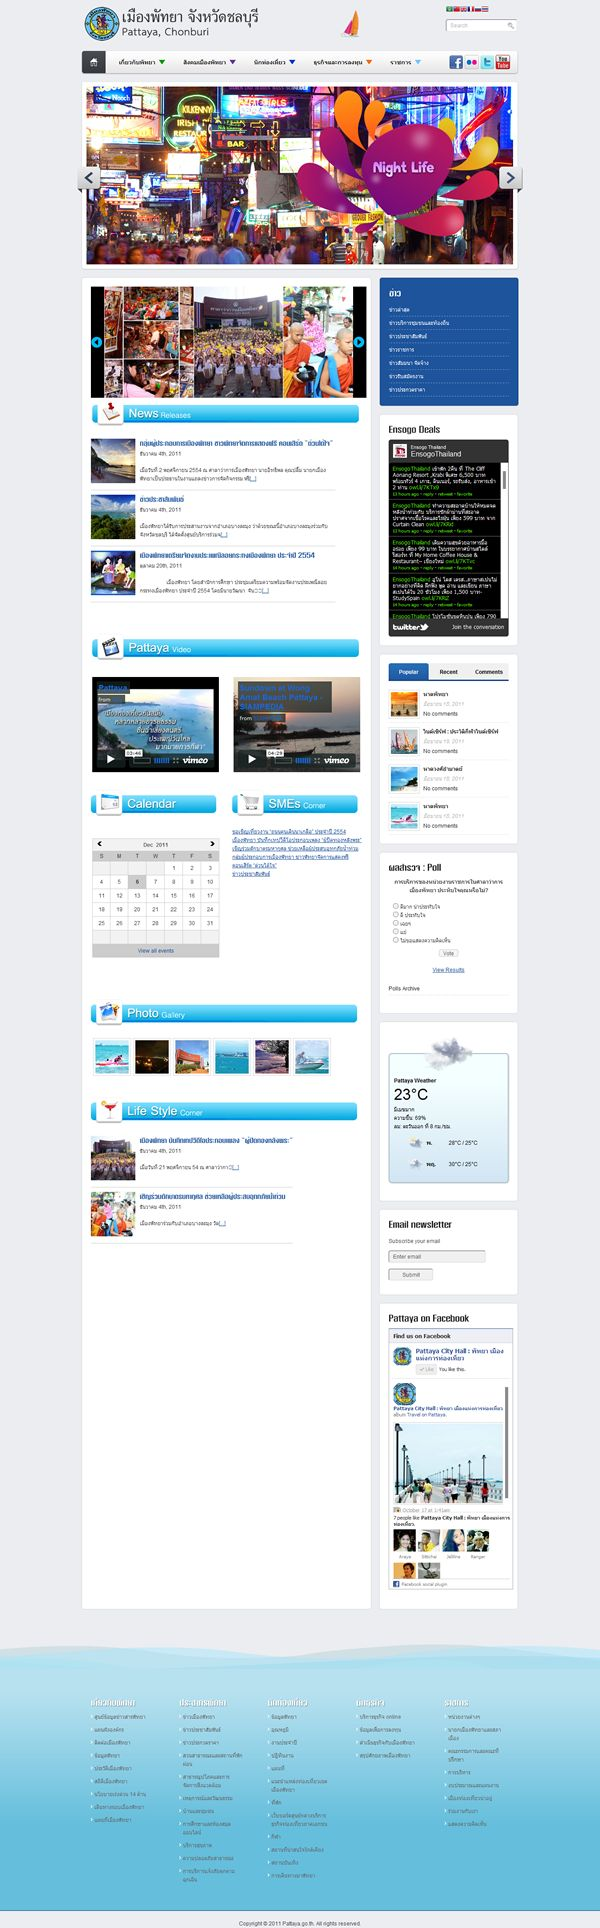 Website - Pattaya Goverment